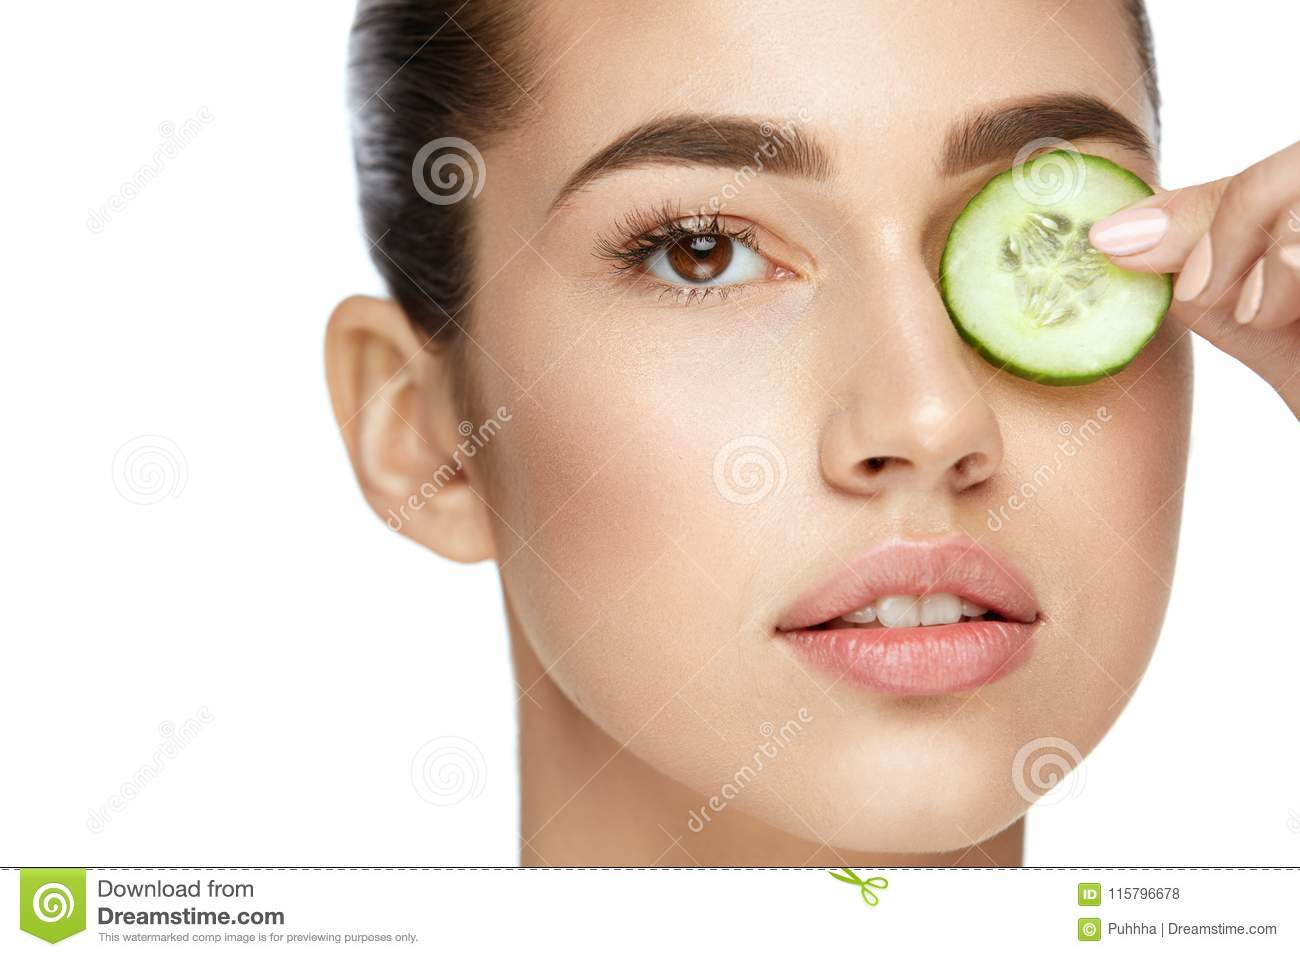 Girl using cucumber